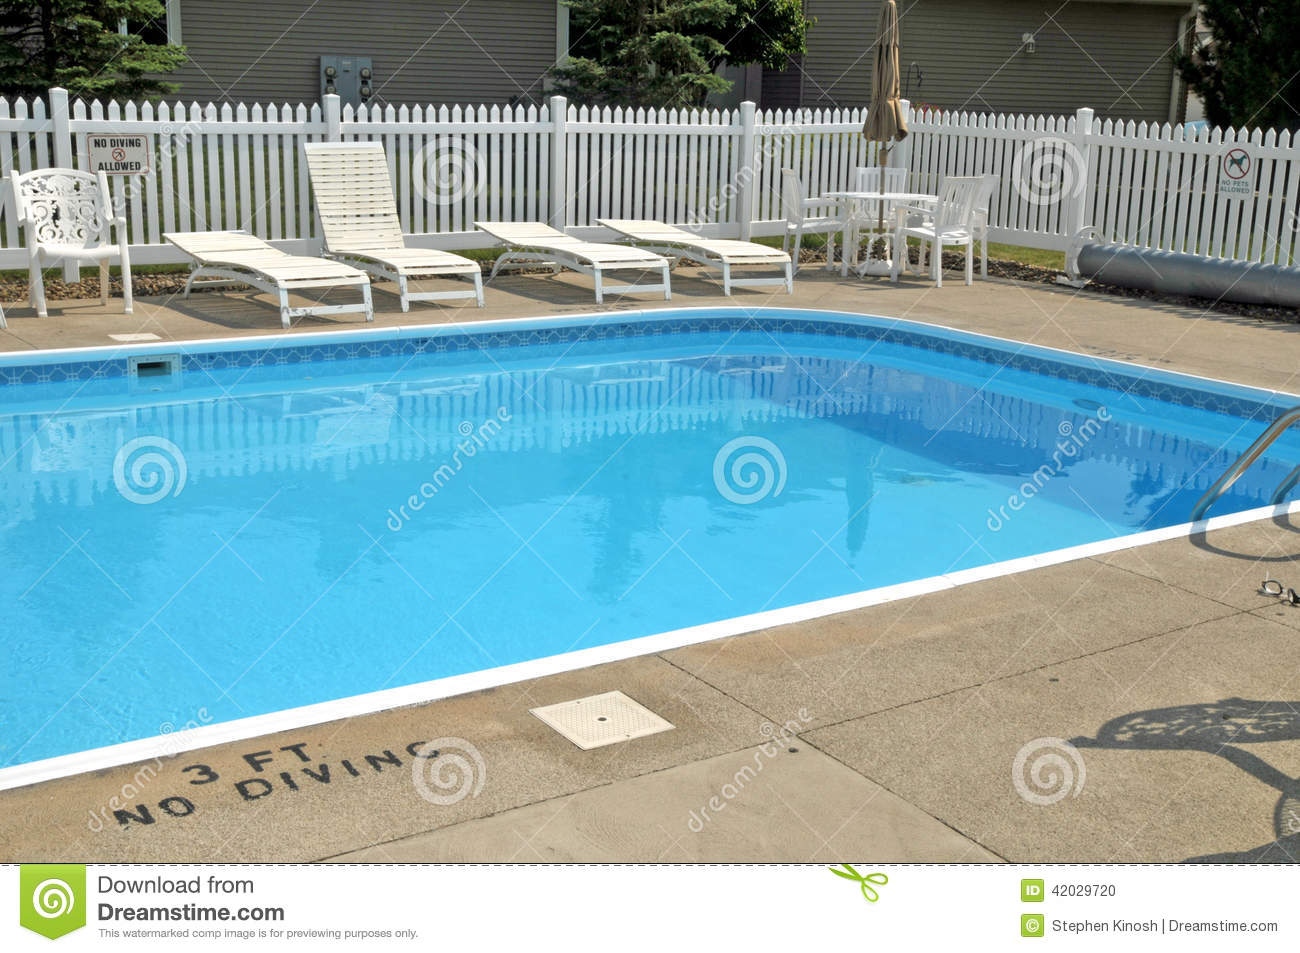 Vinyl Picket Fencing And Swining Pool Stock Photo Image 42029720